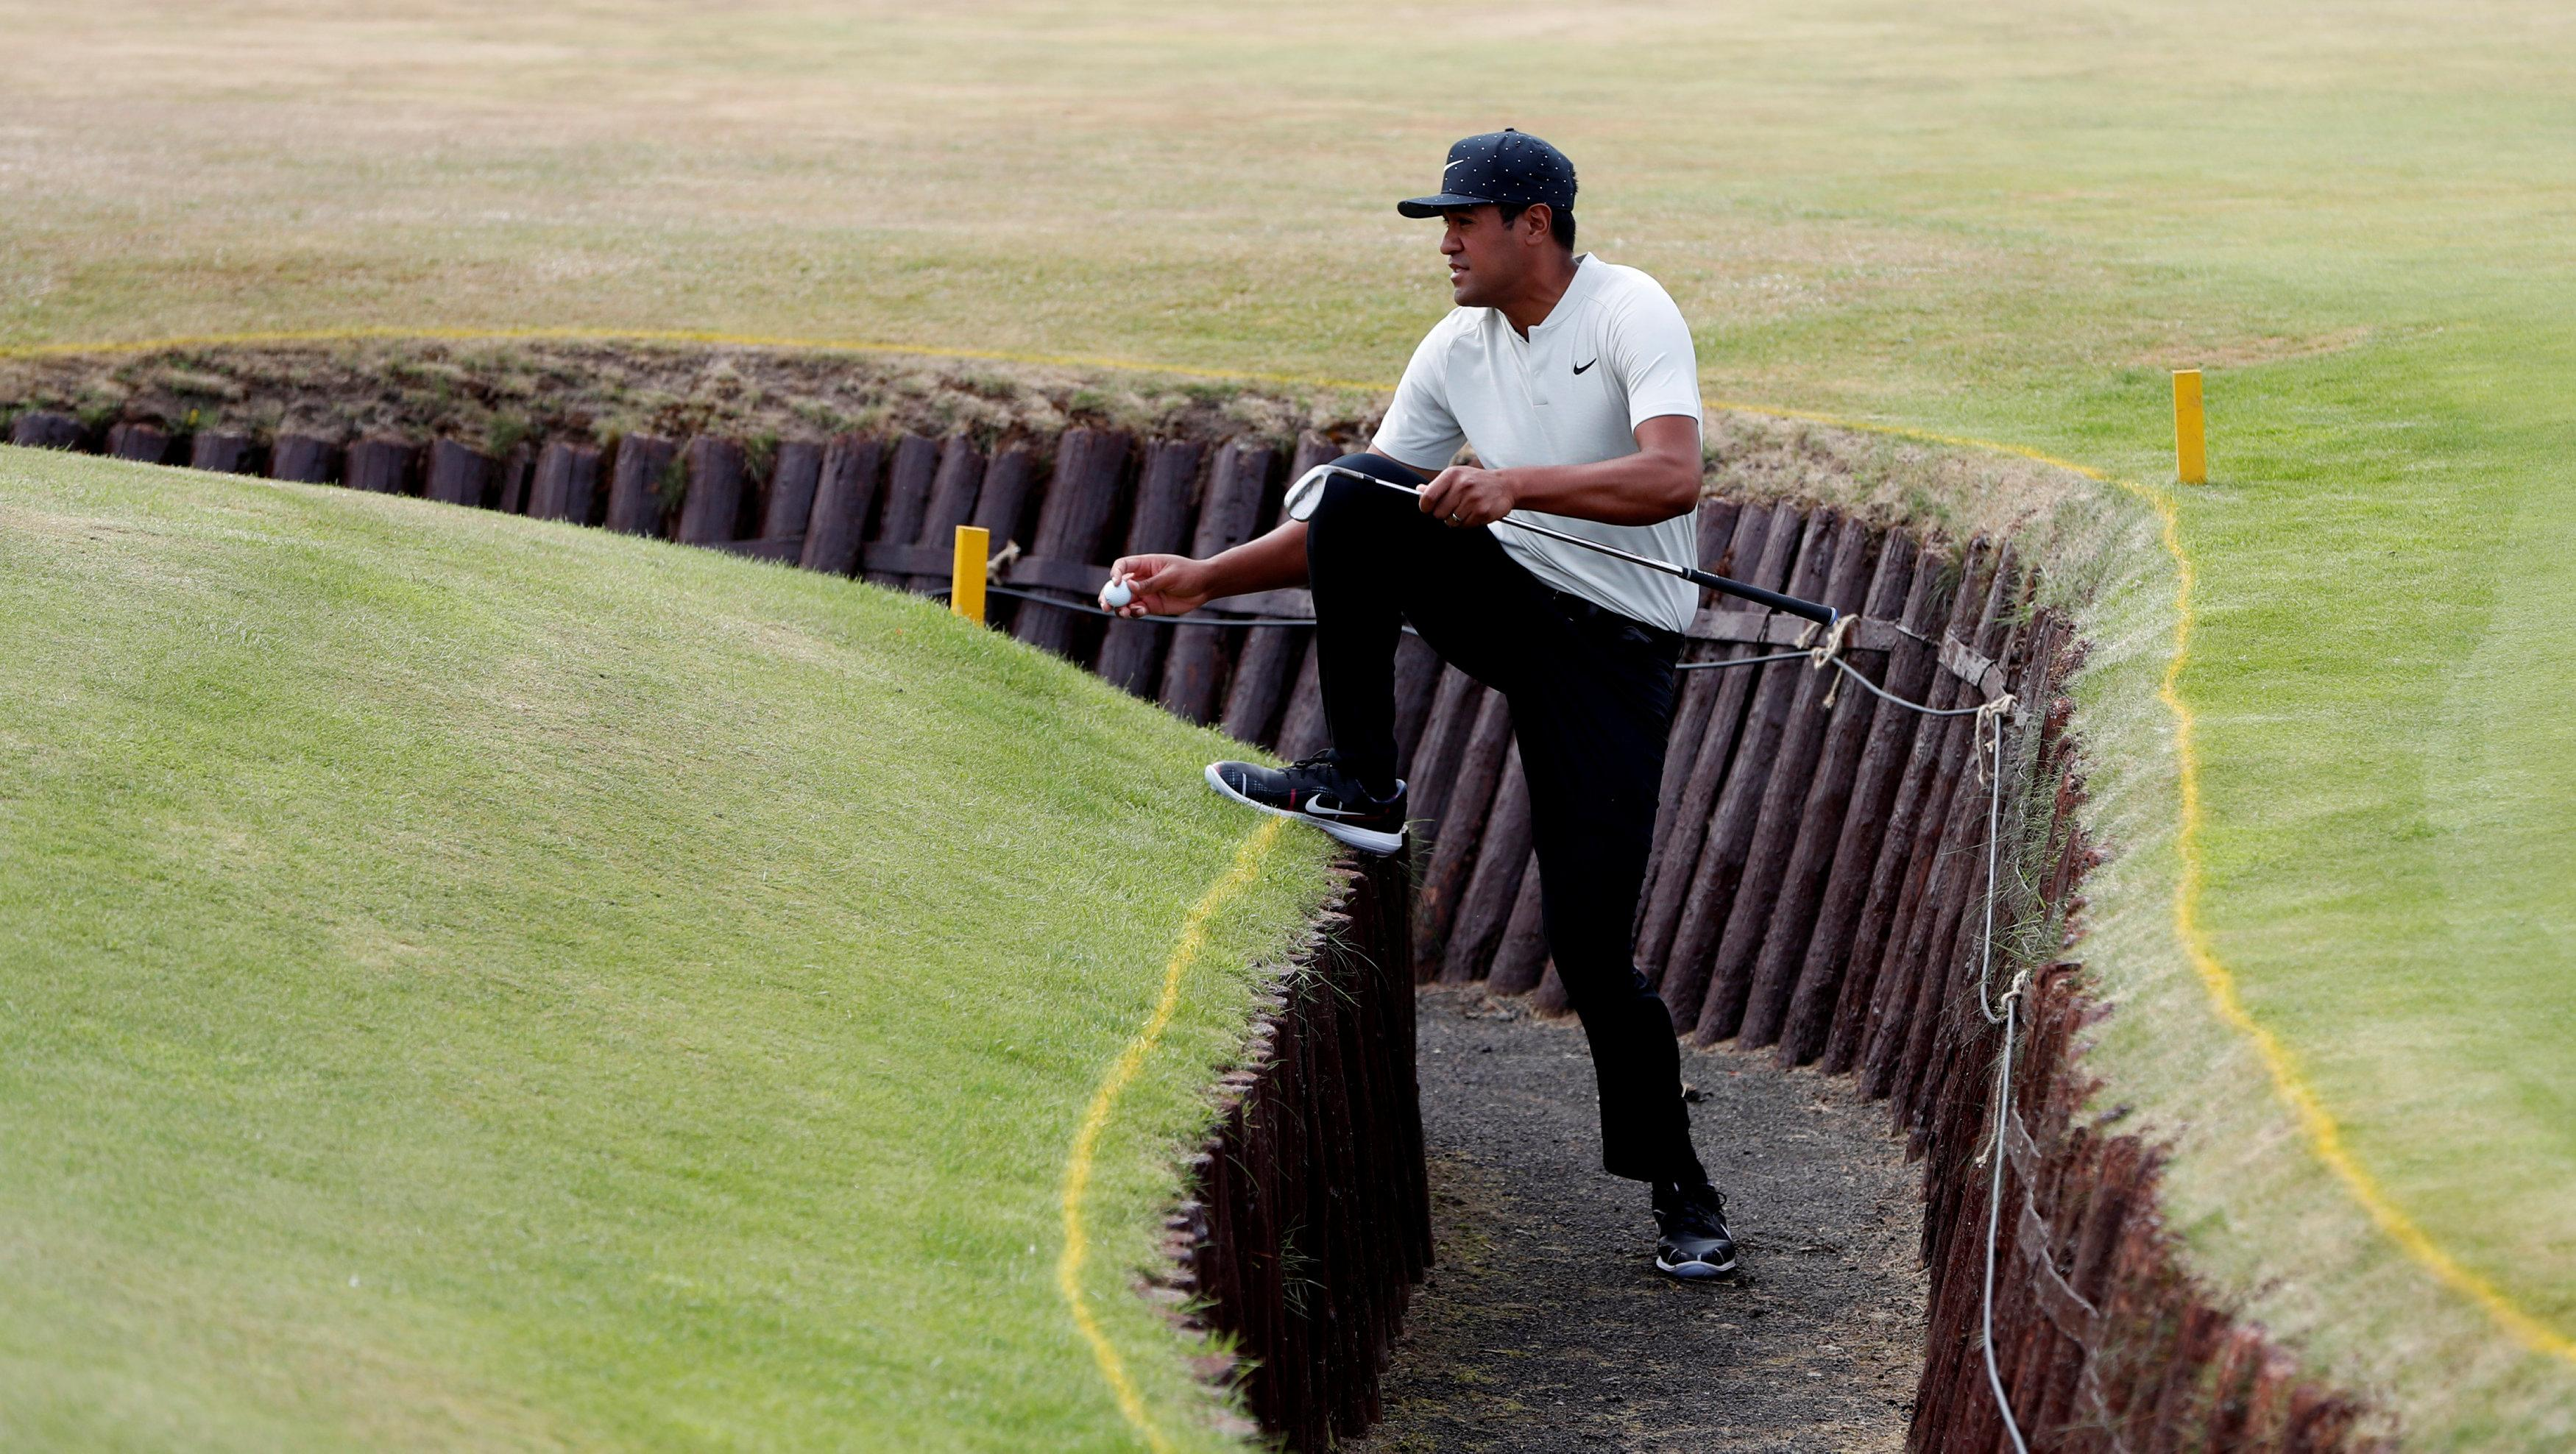 Finau floundered at the third on Saturday, finding a burn as he eventually bogeyed the hole